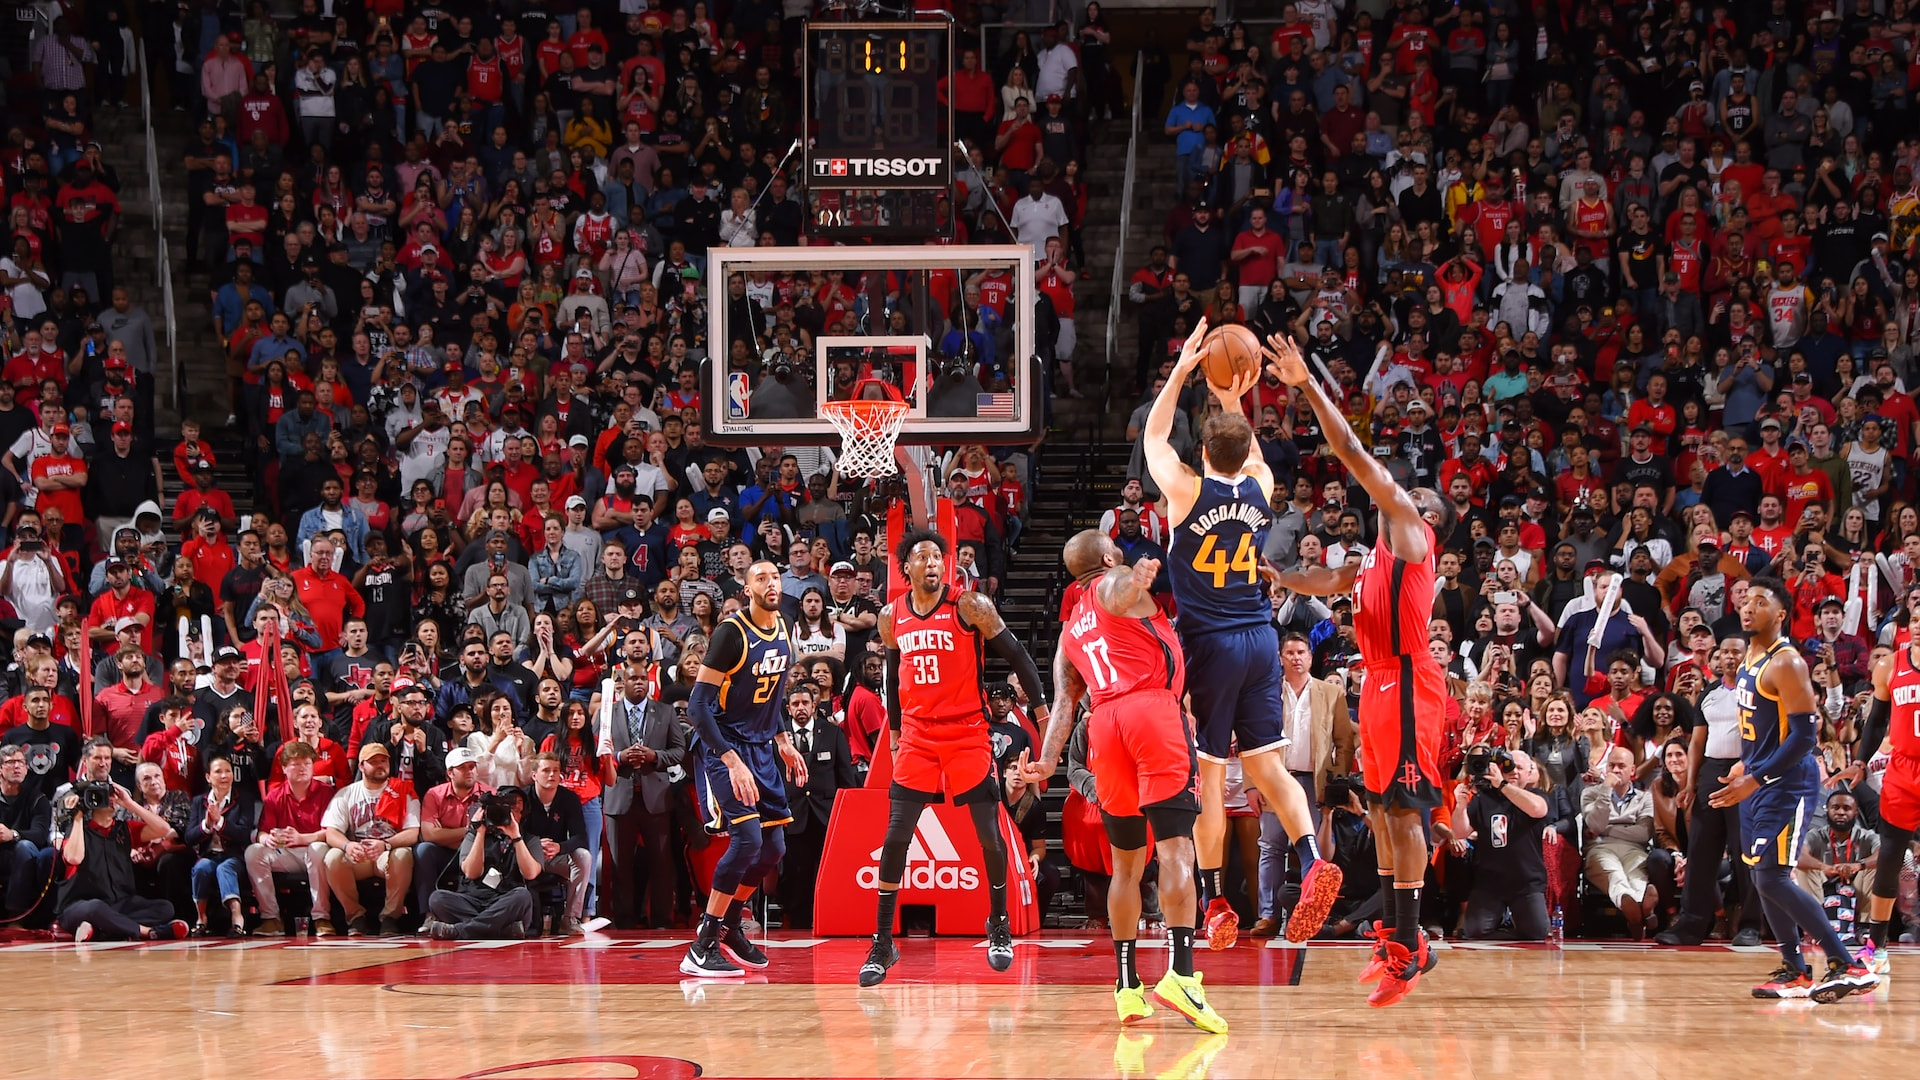 Horry Scale: Bojan Bogdanovic's deep 3-pointer stuns Rockets